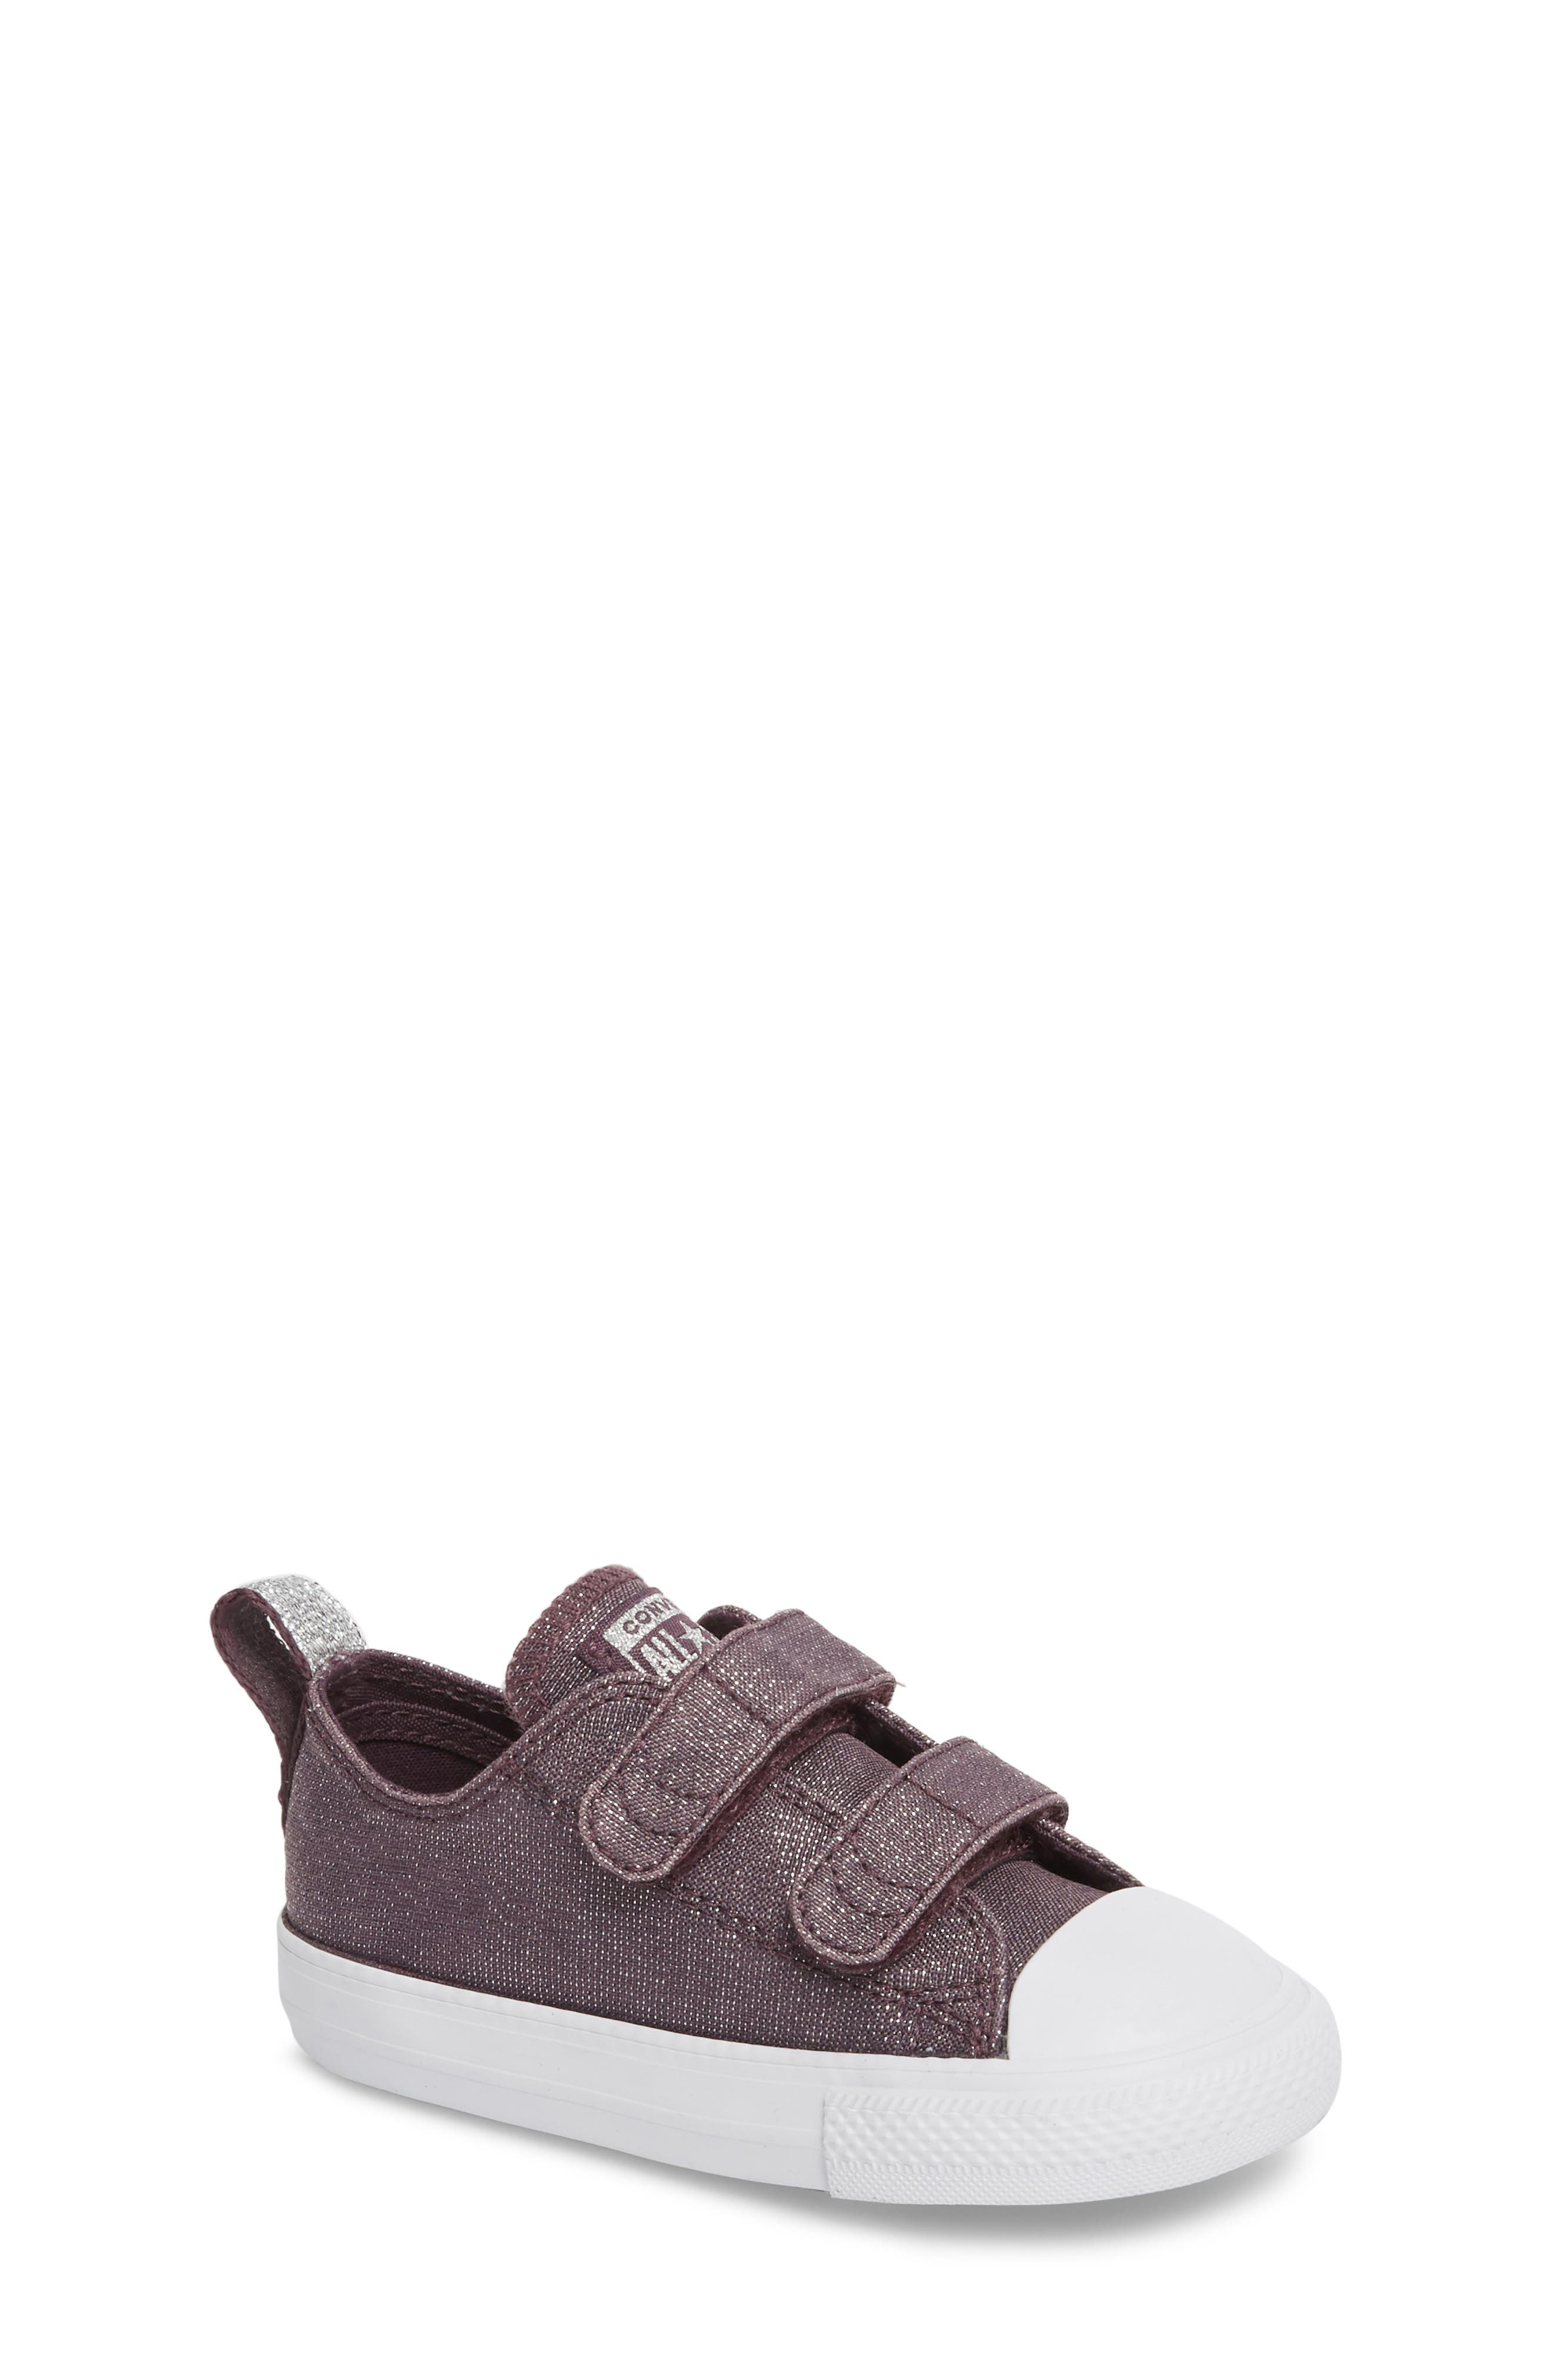 All Star<sup>®</sup> Shimmer 2V Sneaker,                         Main,                         color, Dusk Purple